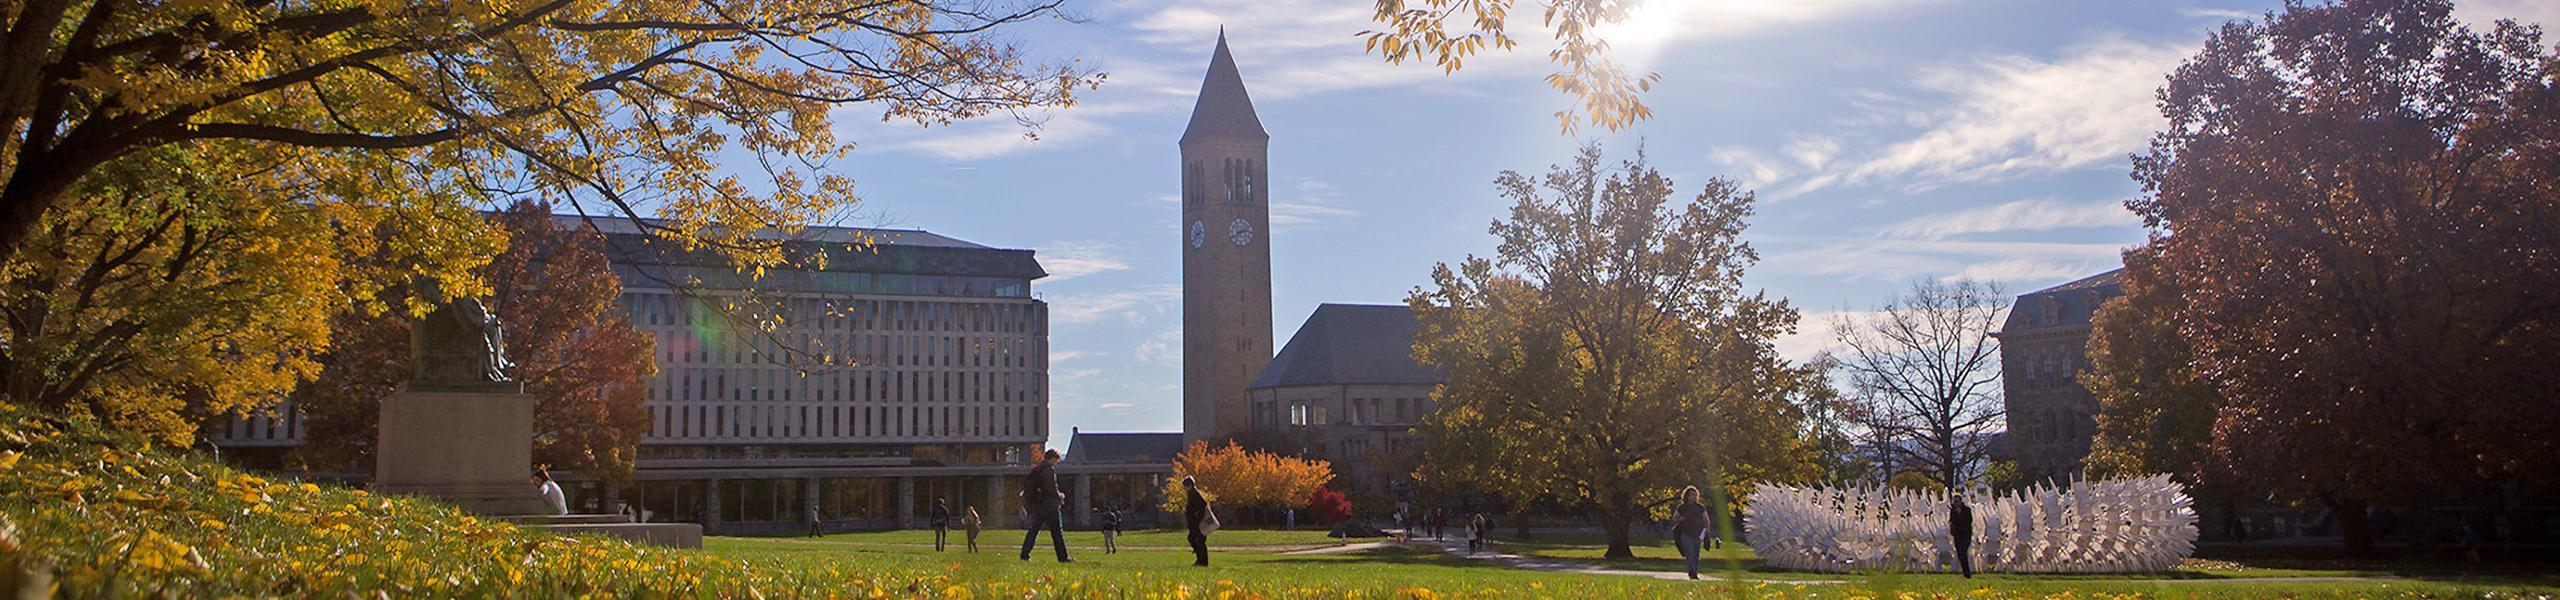 Cornell University landscape with clock town in the background